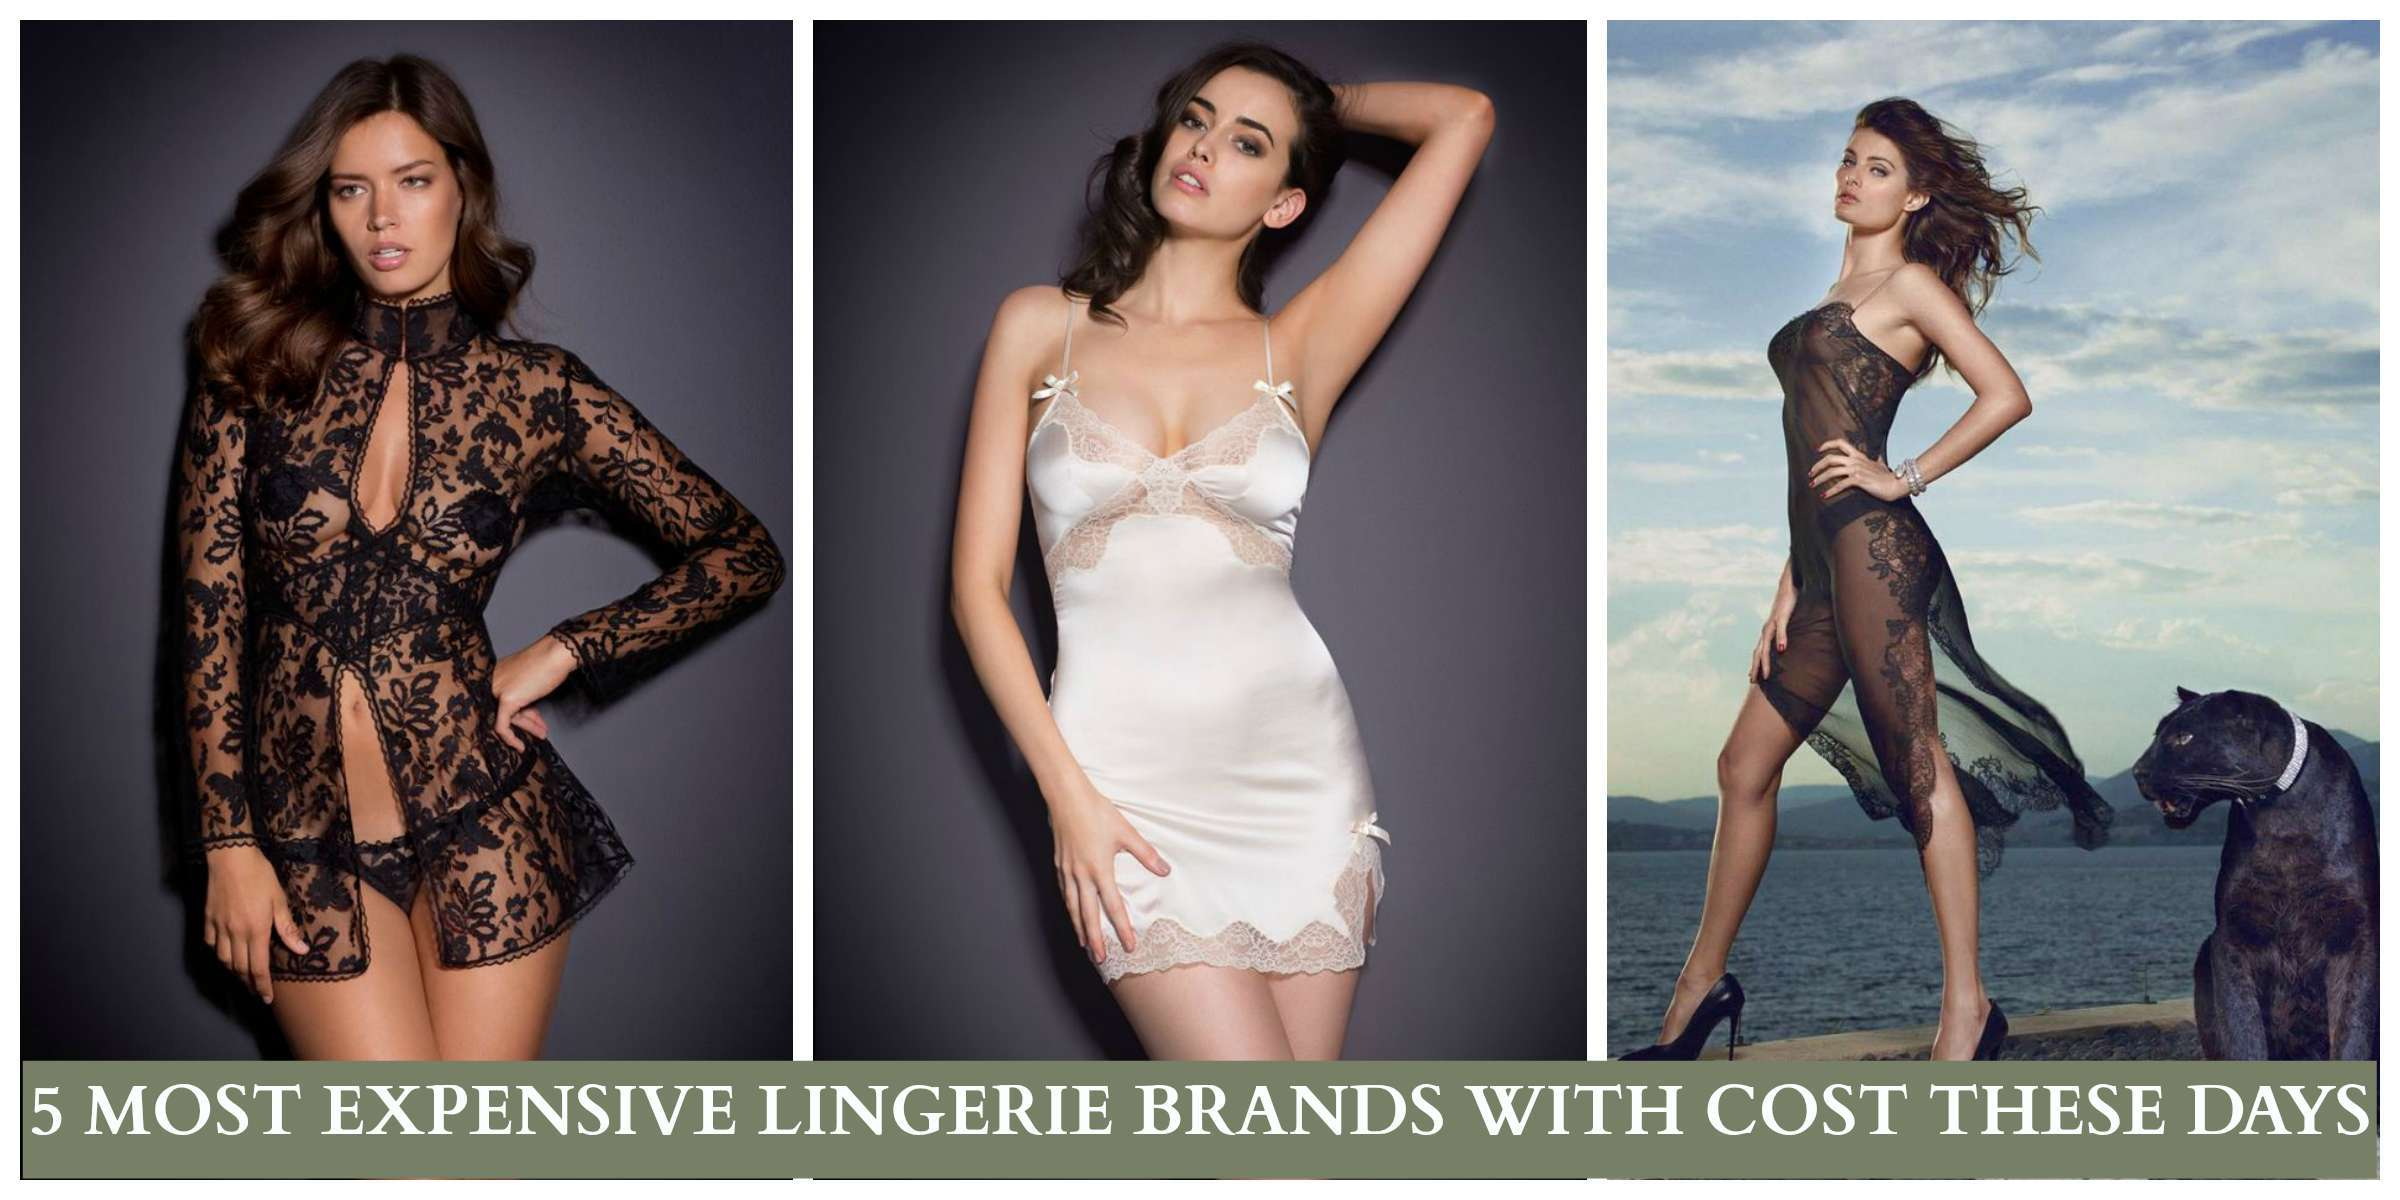 THE COST OF MOST EXPENSIVE LINGERIES